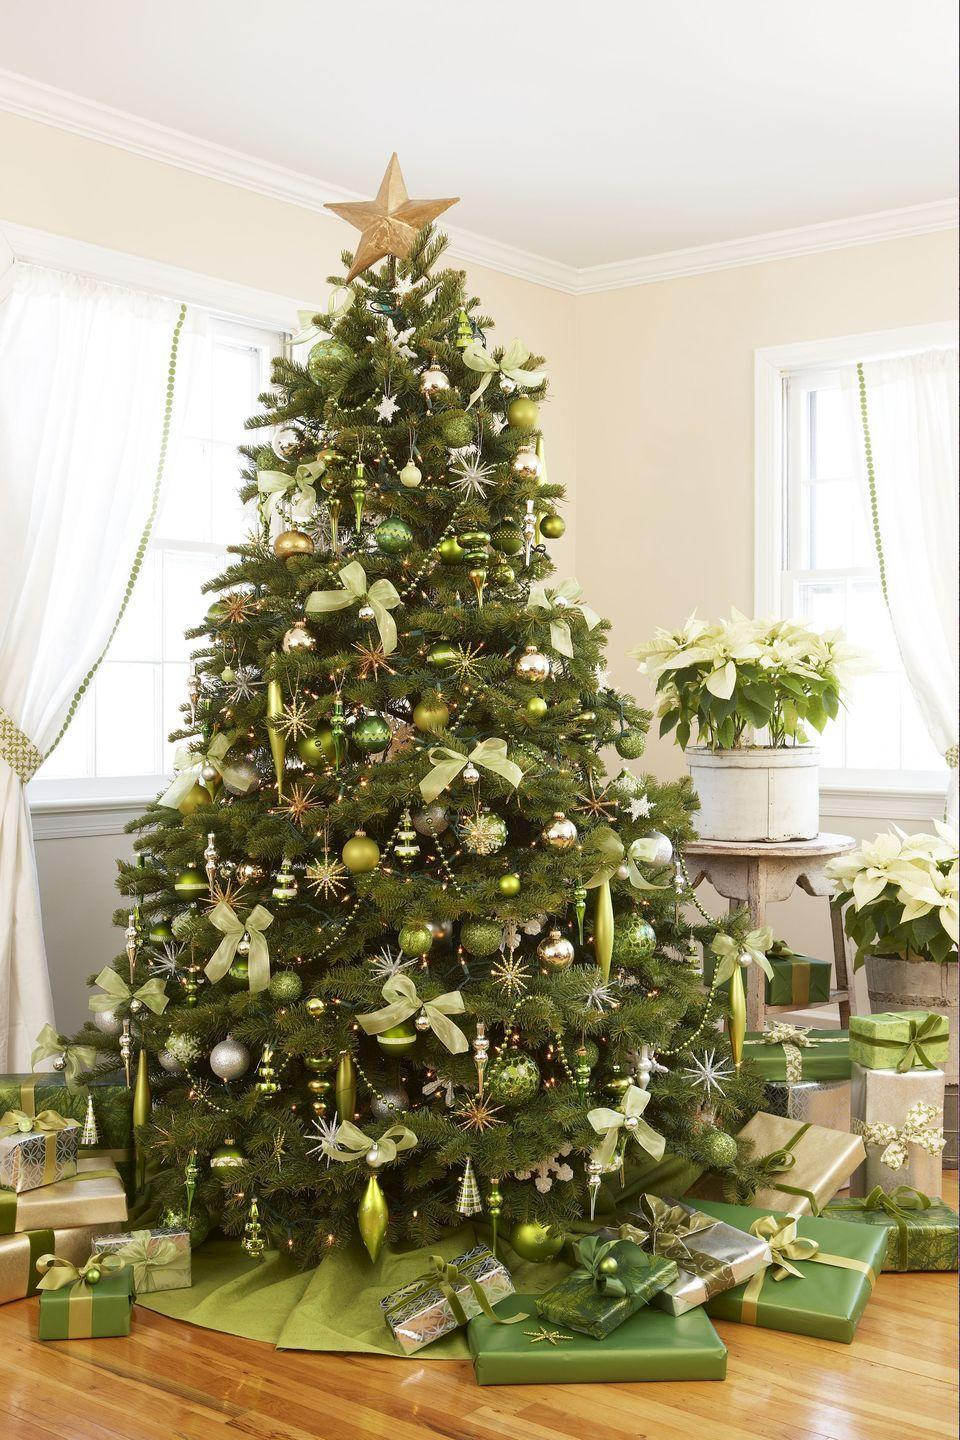 <p>When there's lots of evergreen around, shades of lime and mint feel like a breath of fresh air. Pair verdant trimmings with a classic gold star and silver wrapping paper for subtle shimmer.  </p>